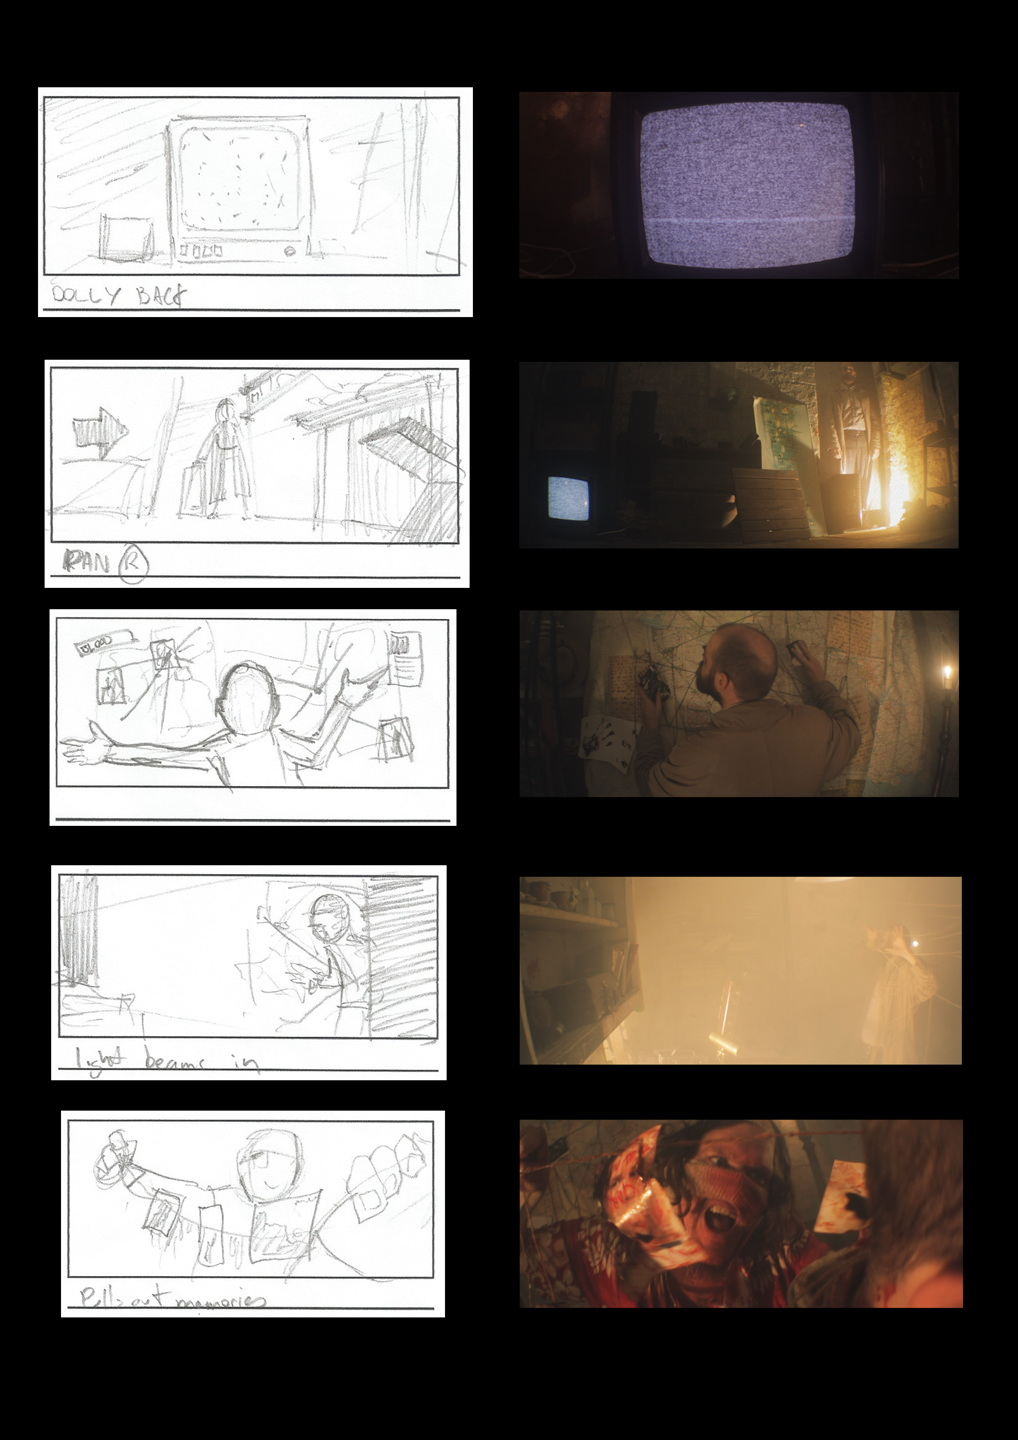 Storyboard Comparisons